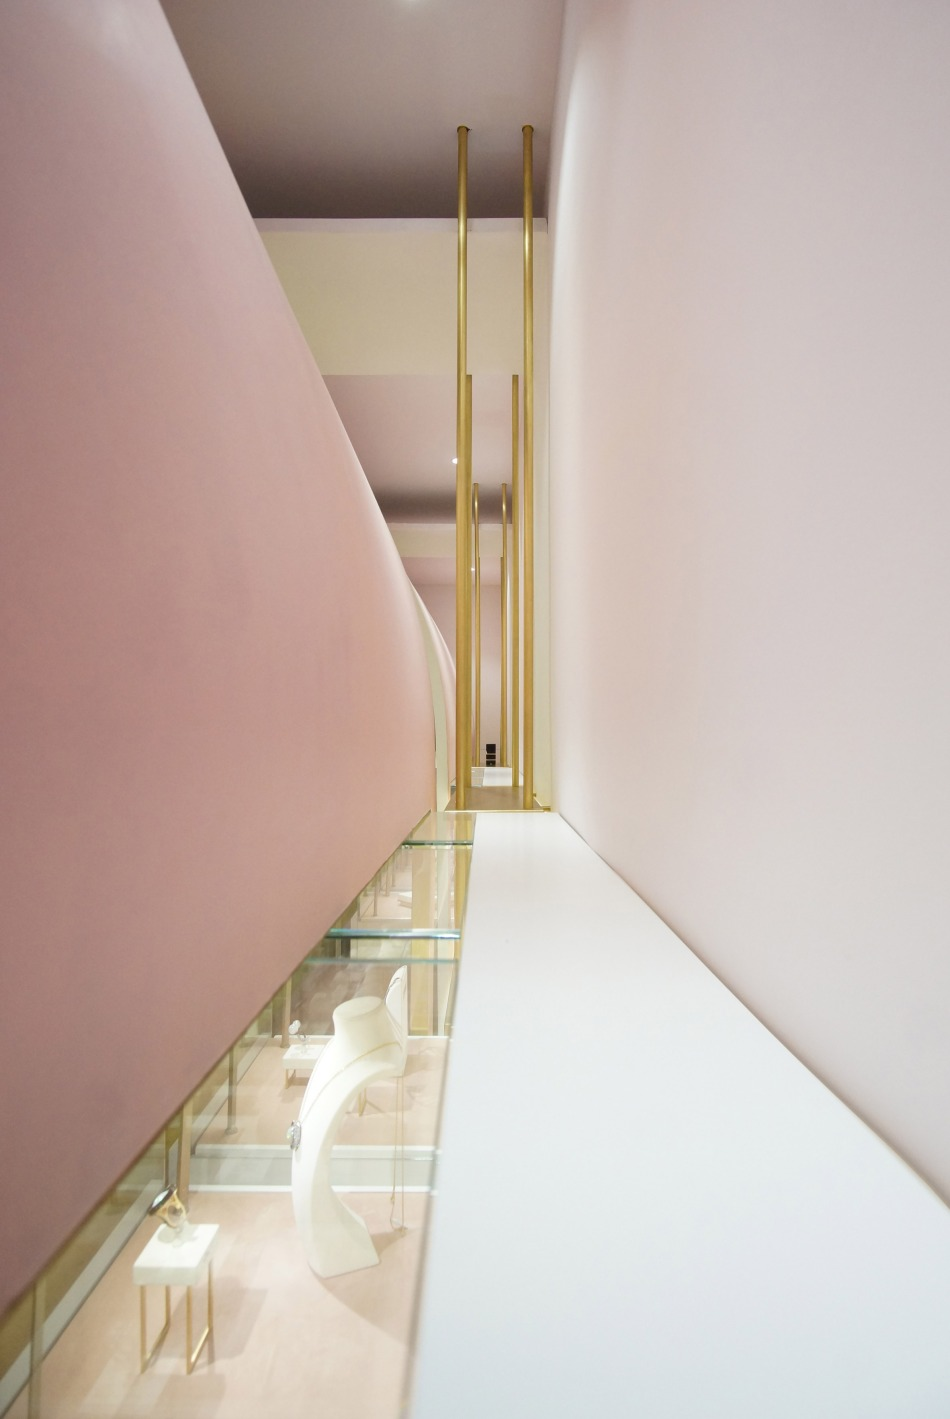 nuun-jewellery-shop-java-architectes-interiors-retail-paris-france_dezeen_2364_col_3